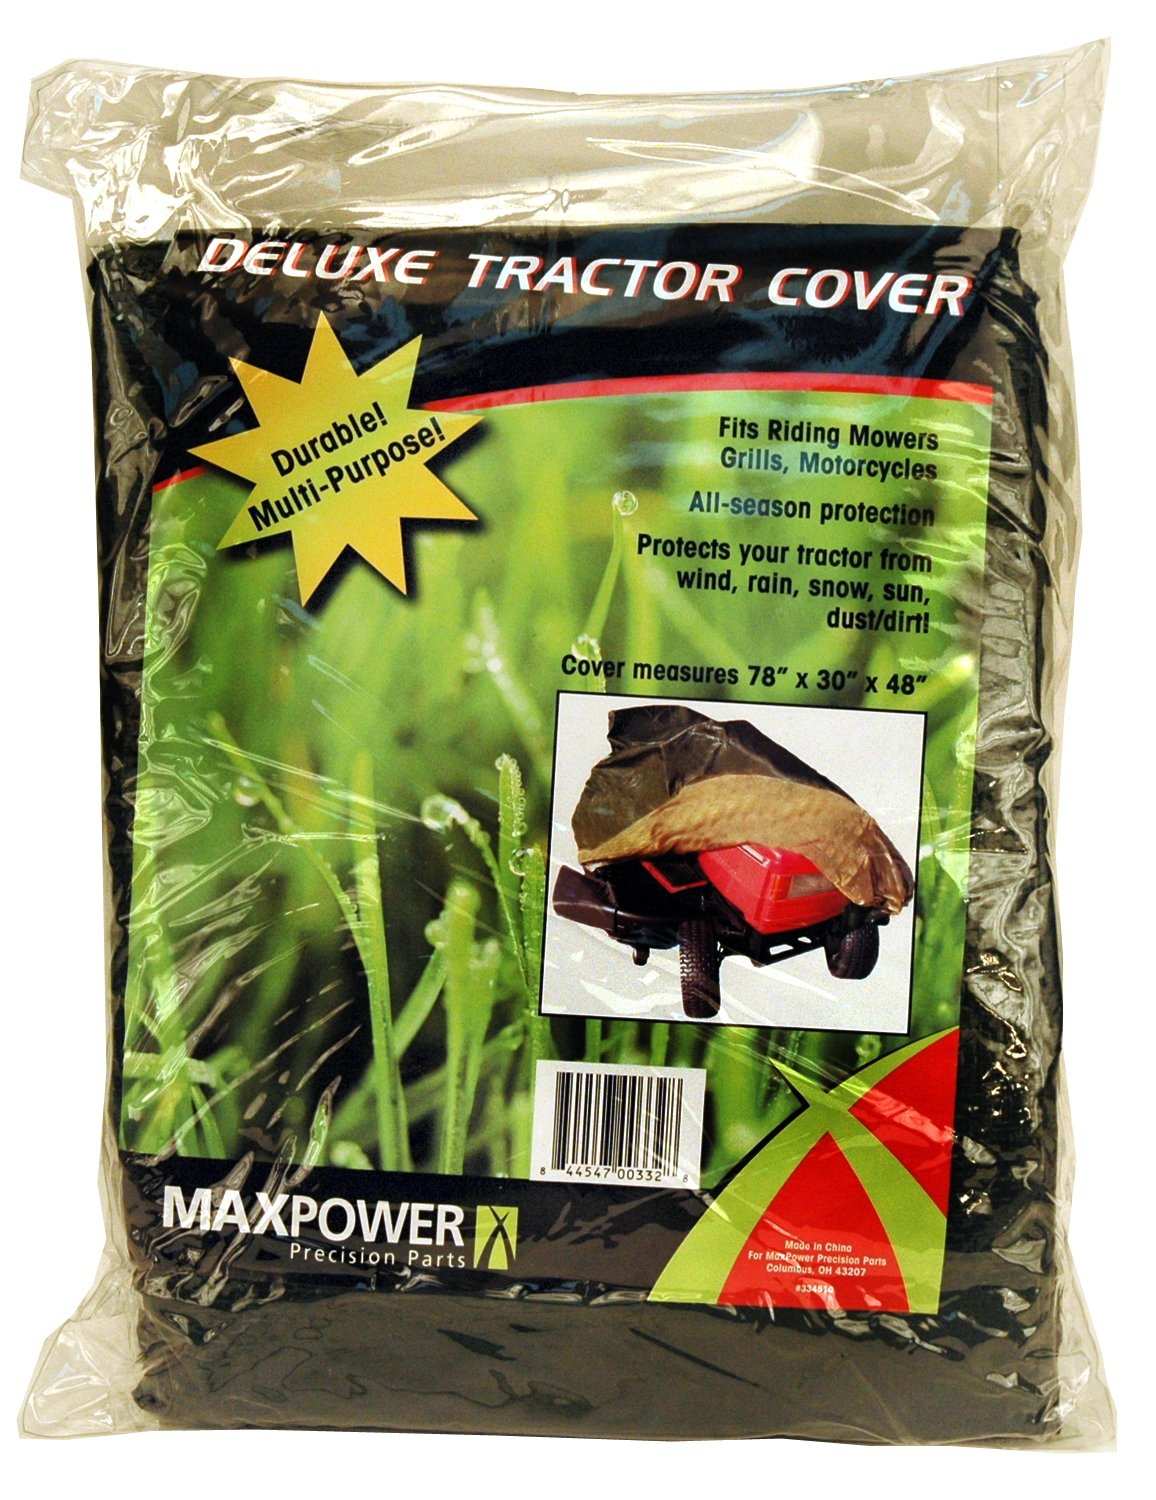 81l9m2diMqL._SL1500_ mower parts & accessories amazon com  at edmiracle.co